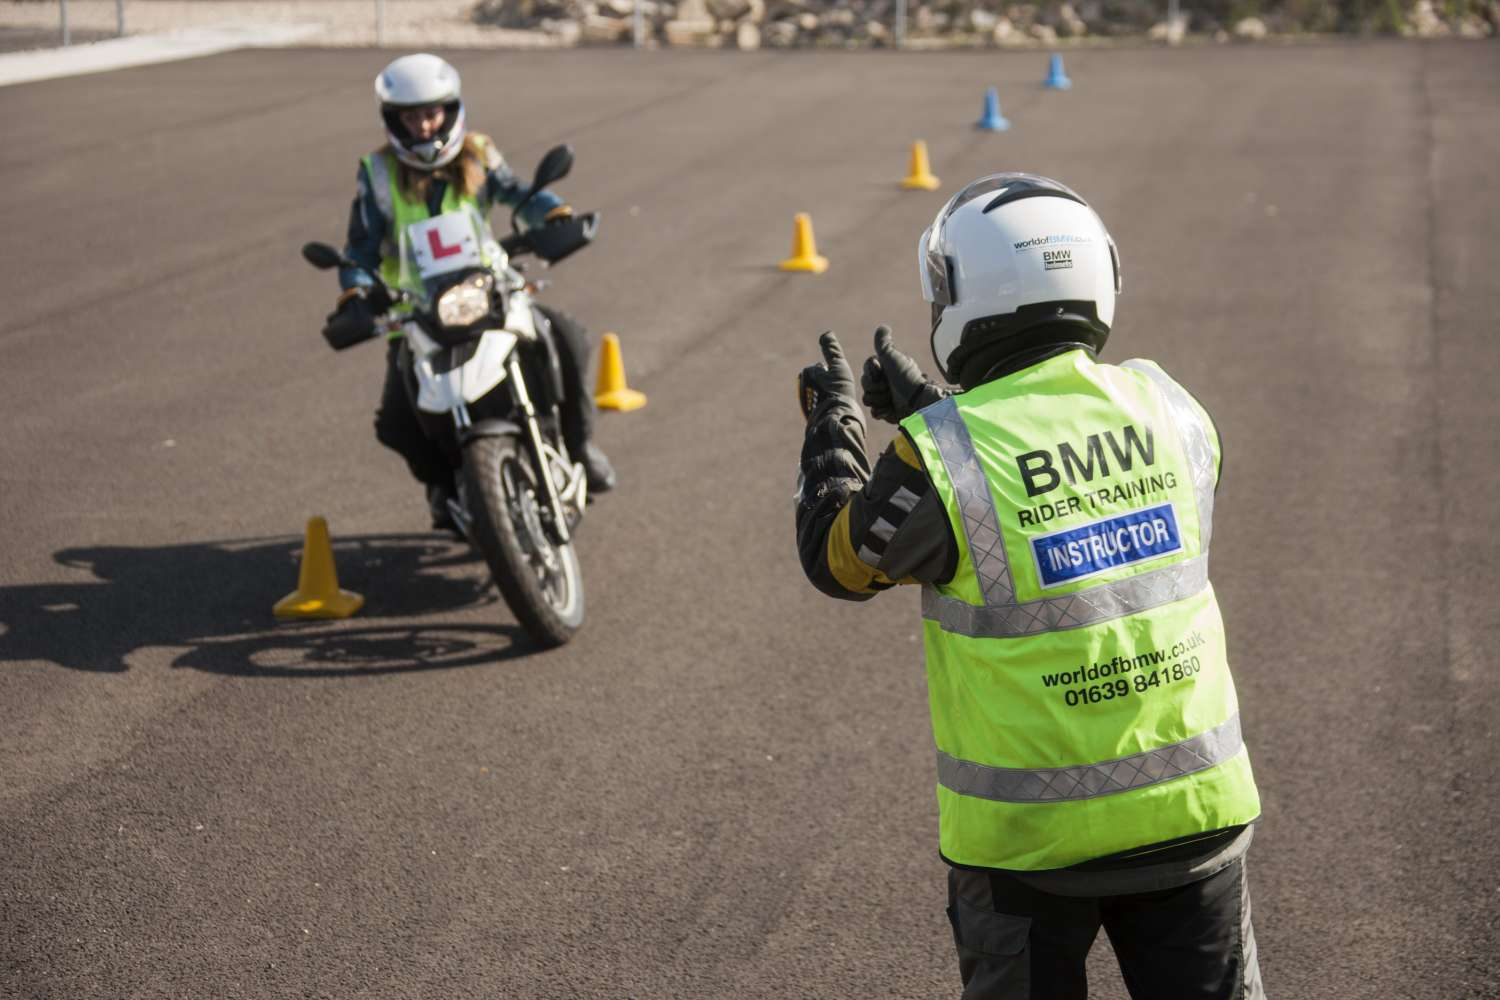 Learn-to-ride-with-bmw-1